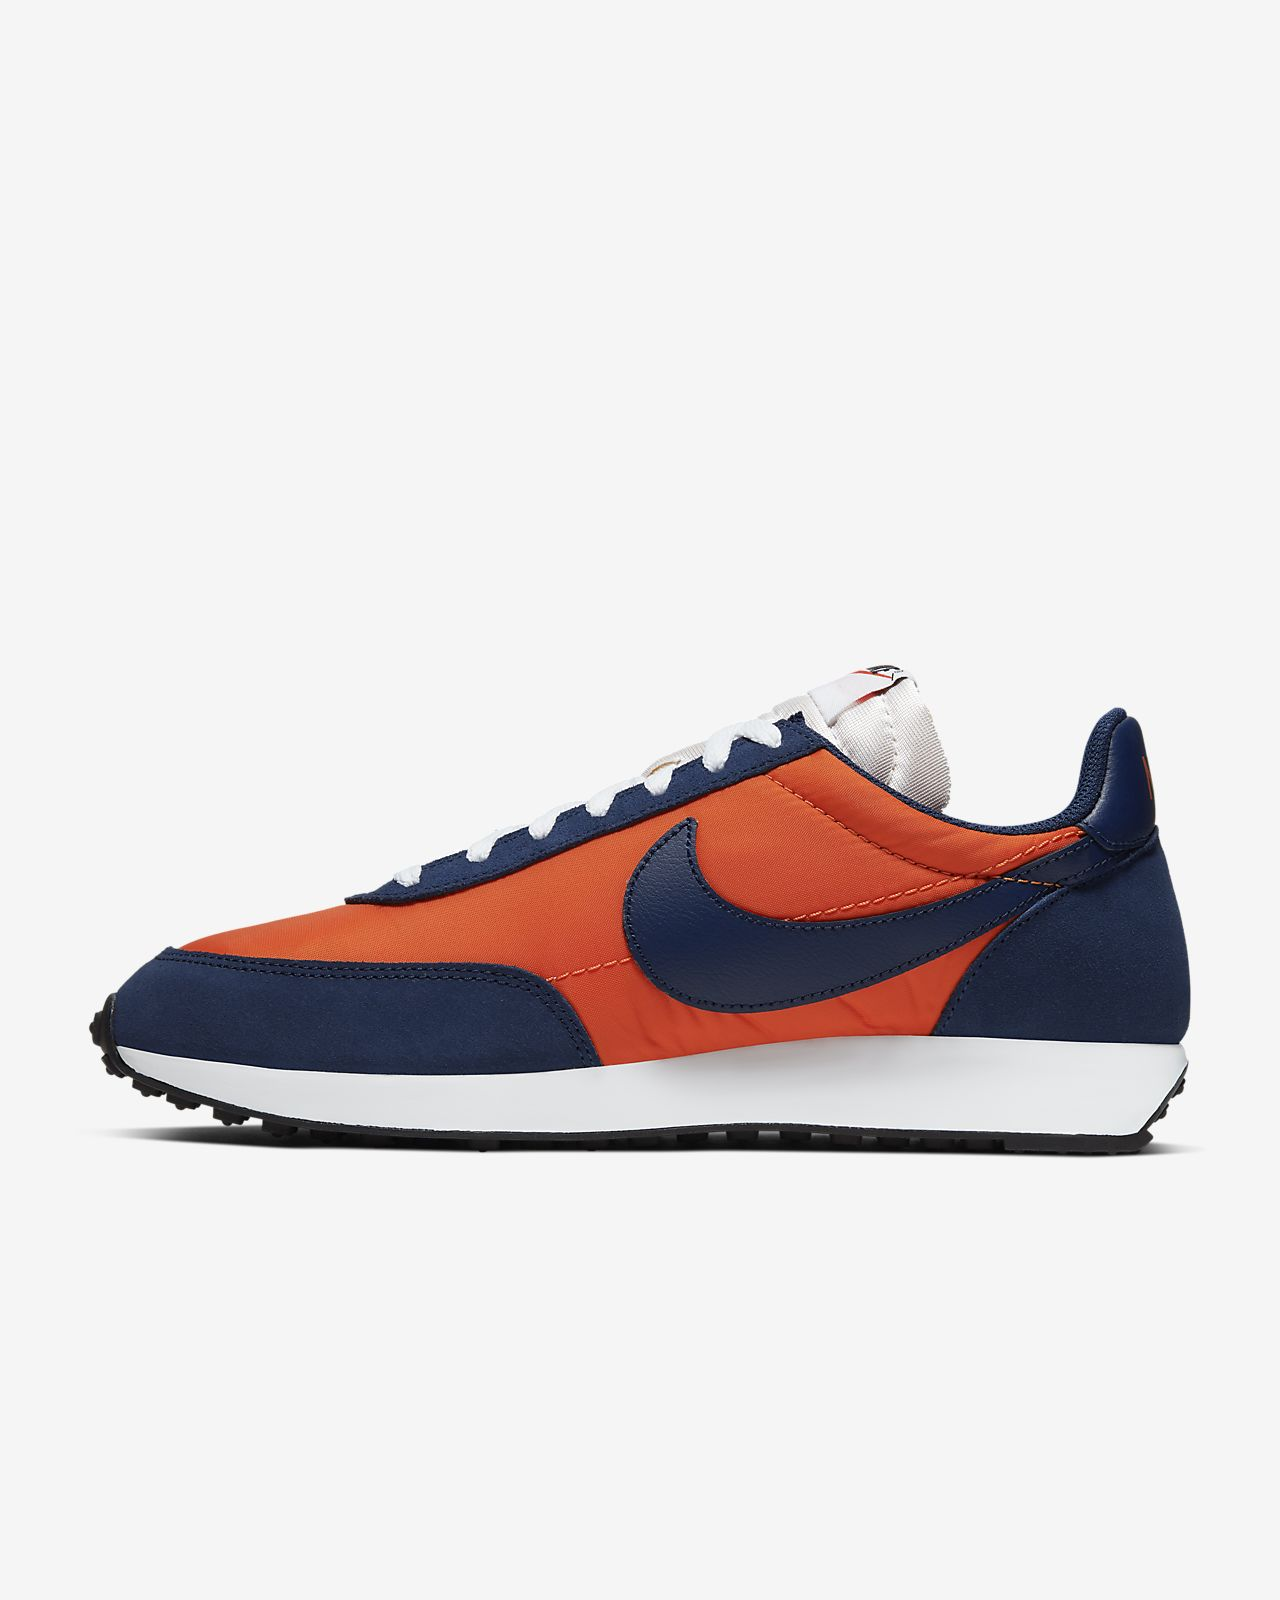 Nike Air Tailwind 79 Shoe